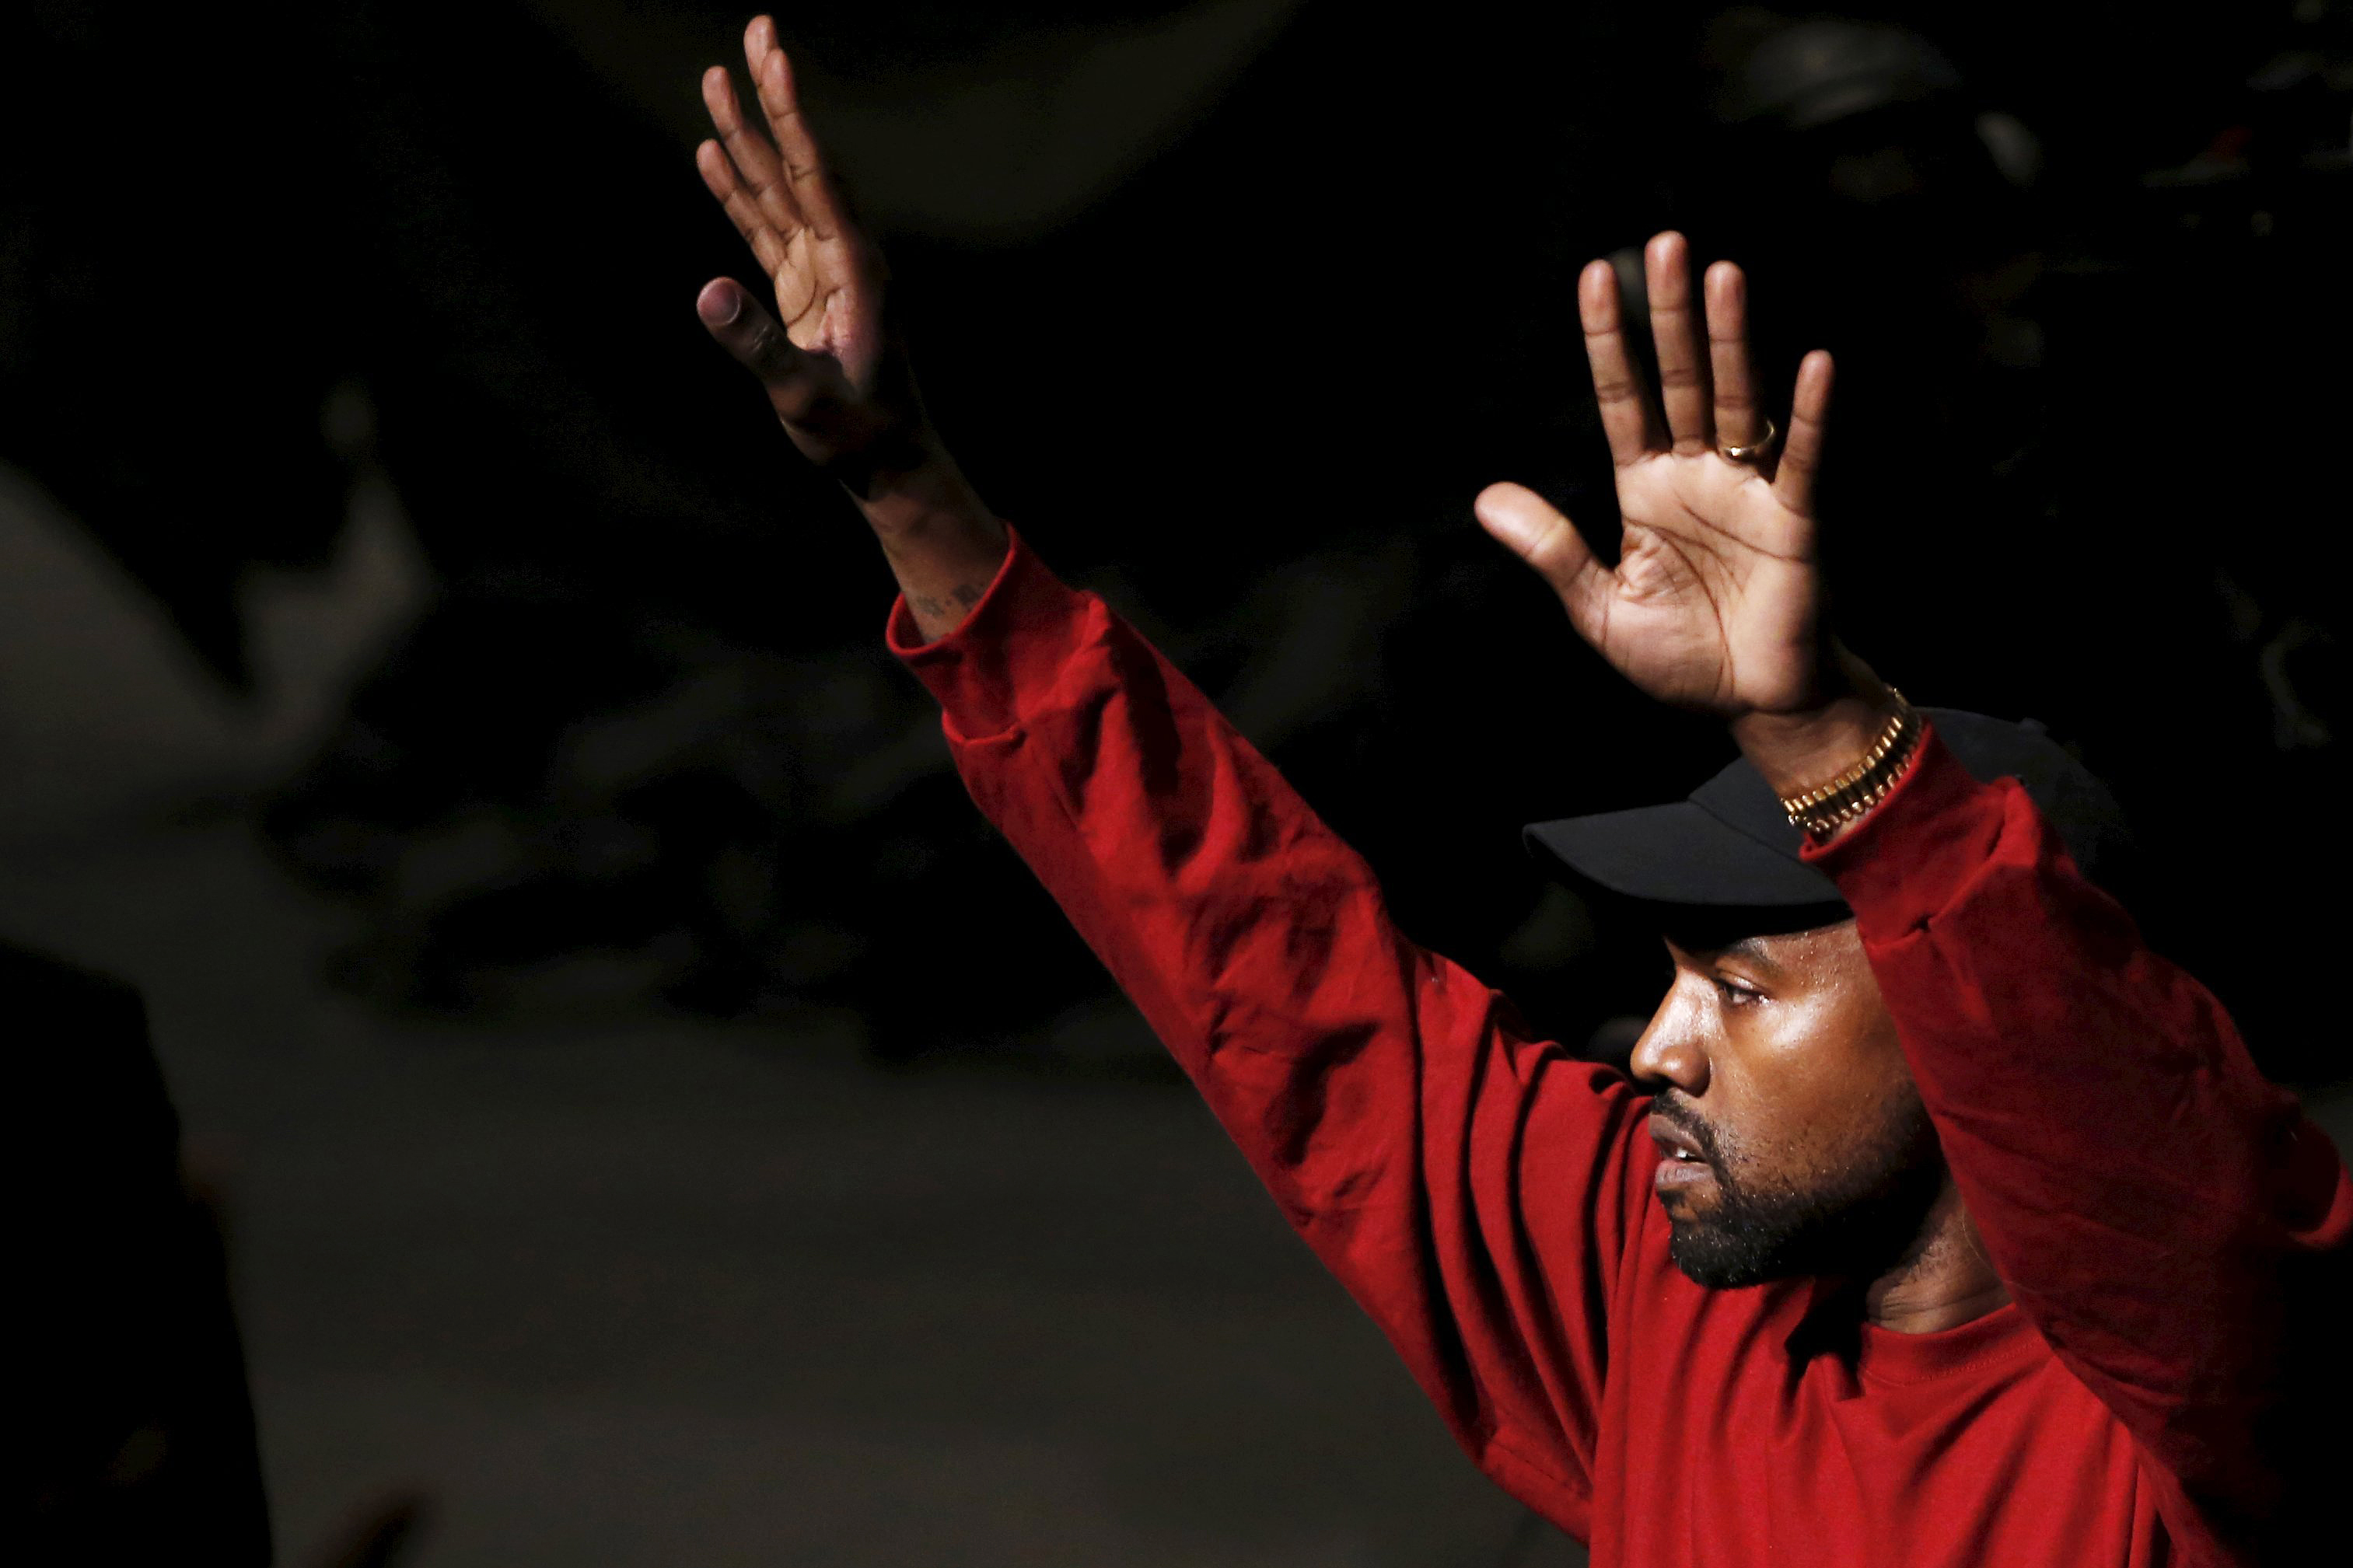 Kanye West acknowledges attendees during his Yeezy Season 3 Collection presentation and listening party at New York Fashion Week on Feb. 11, 2016.